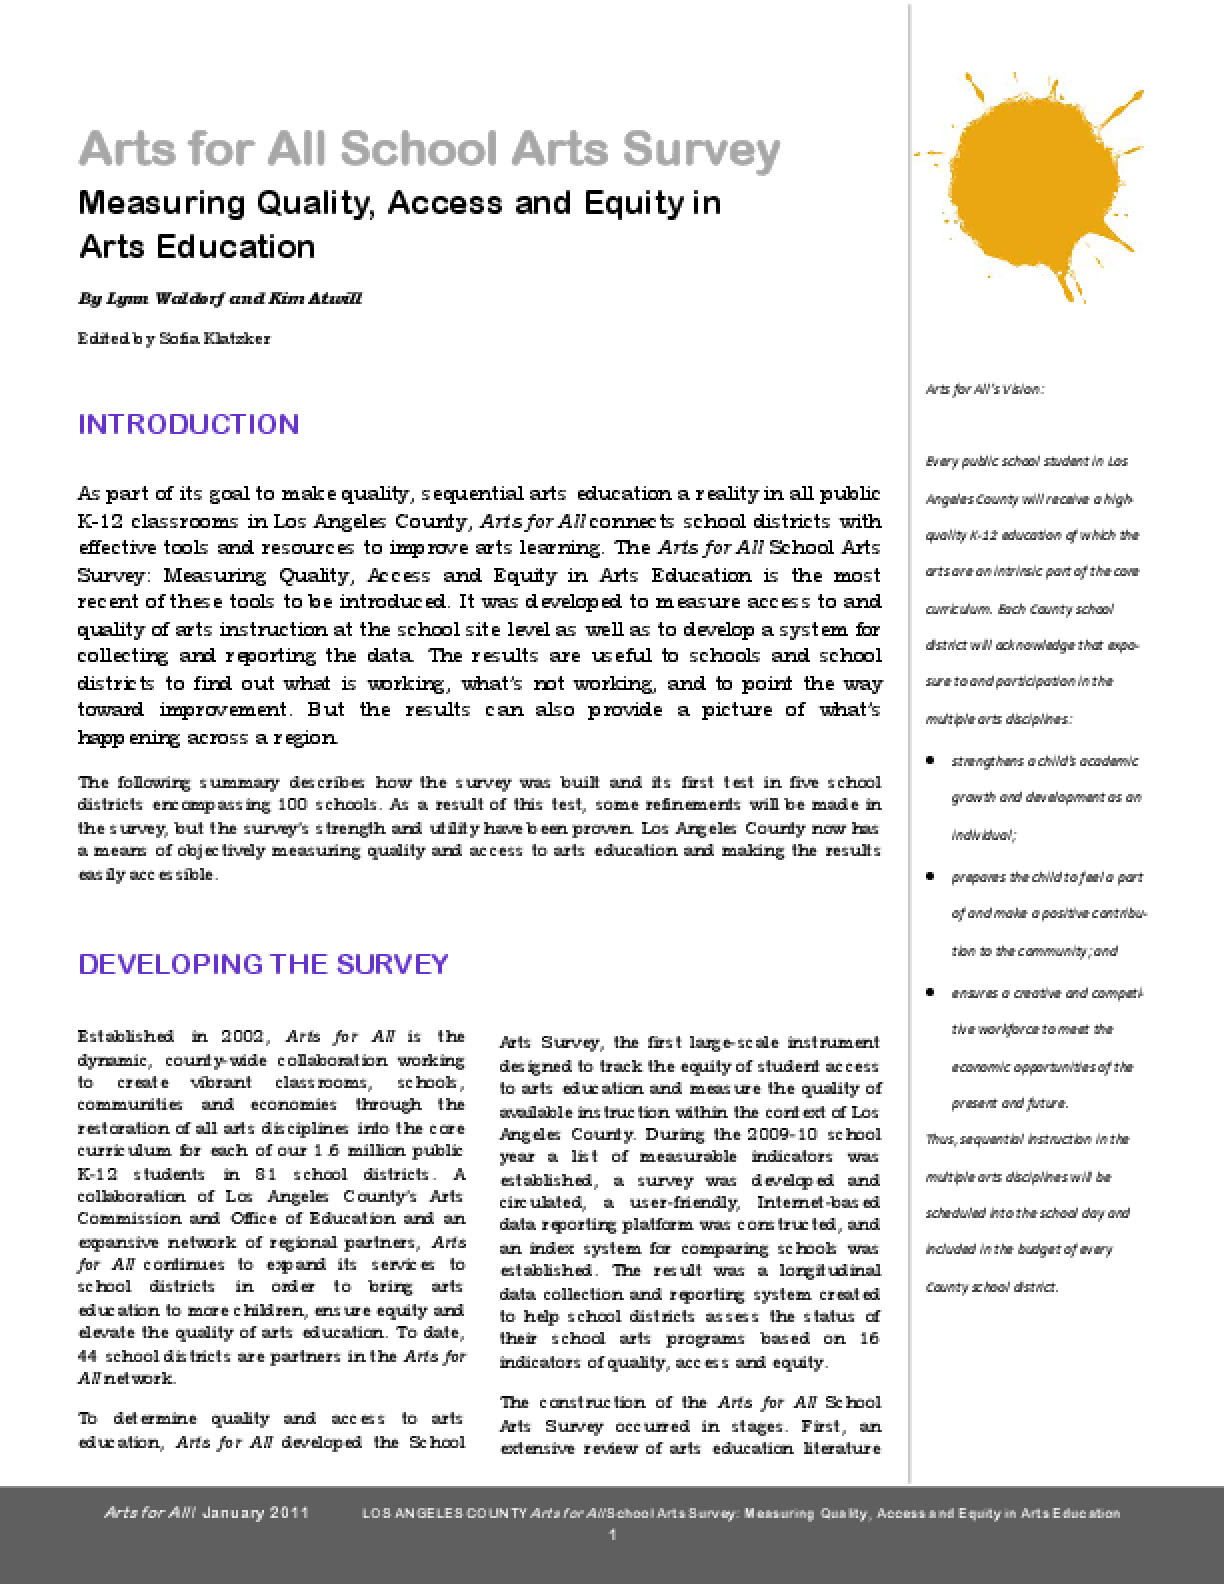 Arts for All School Arts Survey: Measuring Quality, Access and Equity in Arts Education